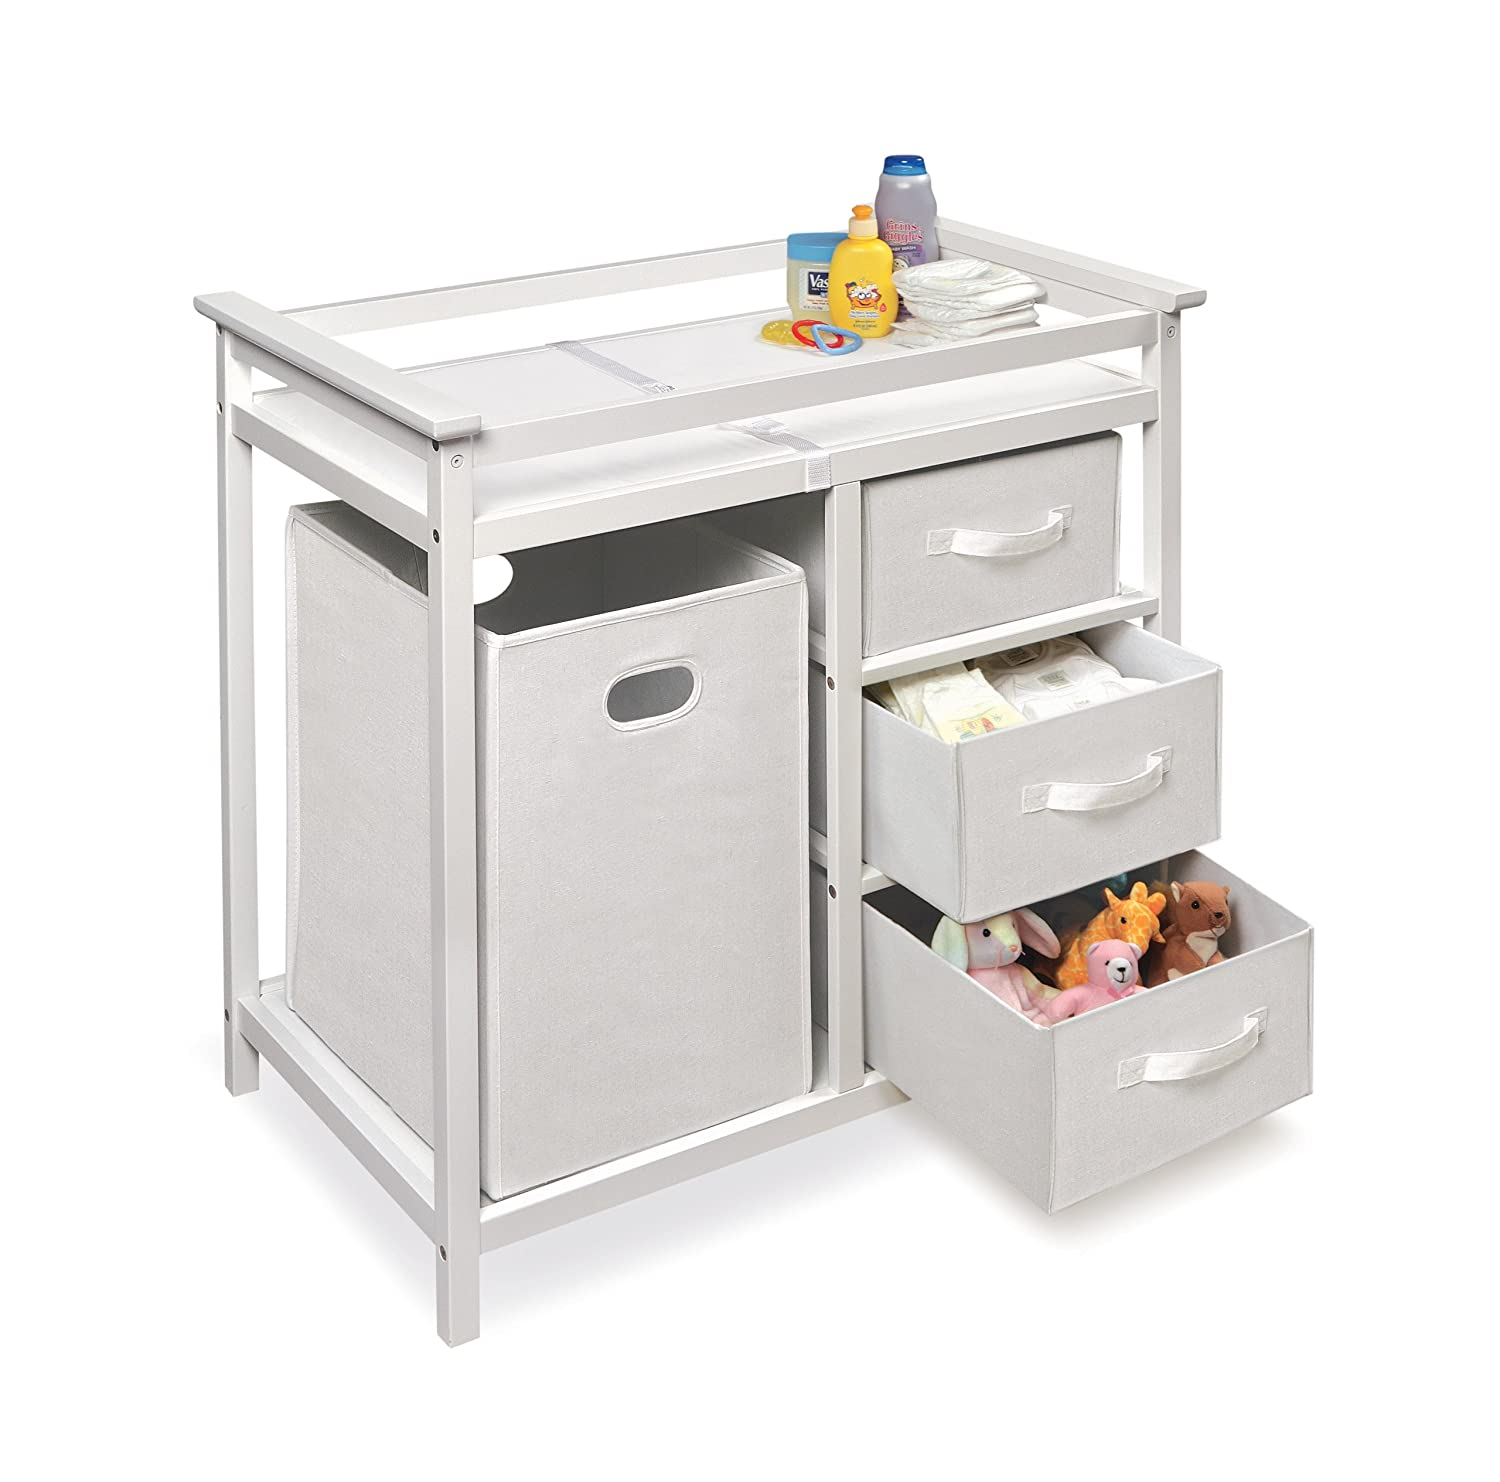 Amazon.com : Badger Basket Modern Changing Table With 3 Baskets And Hamper,  White : Baby